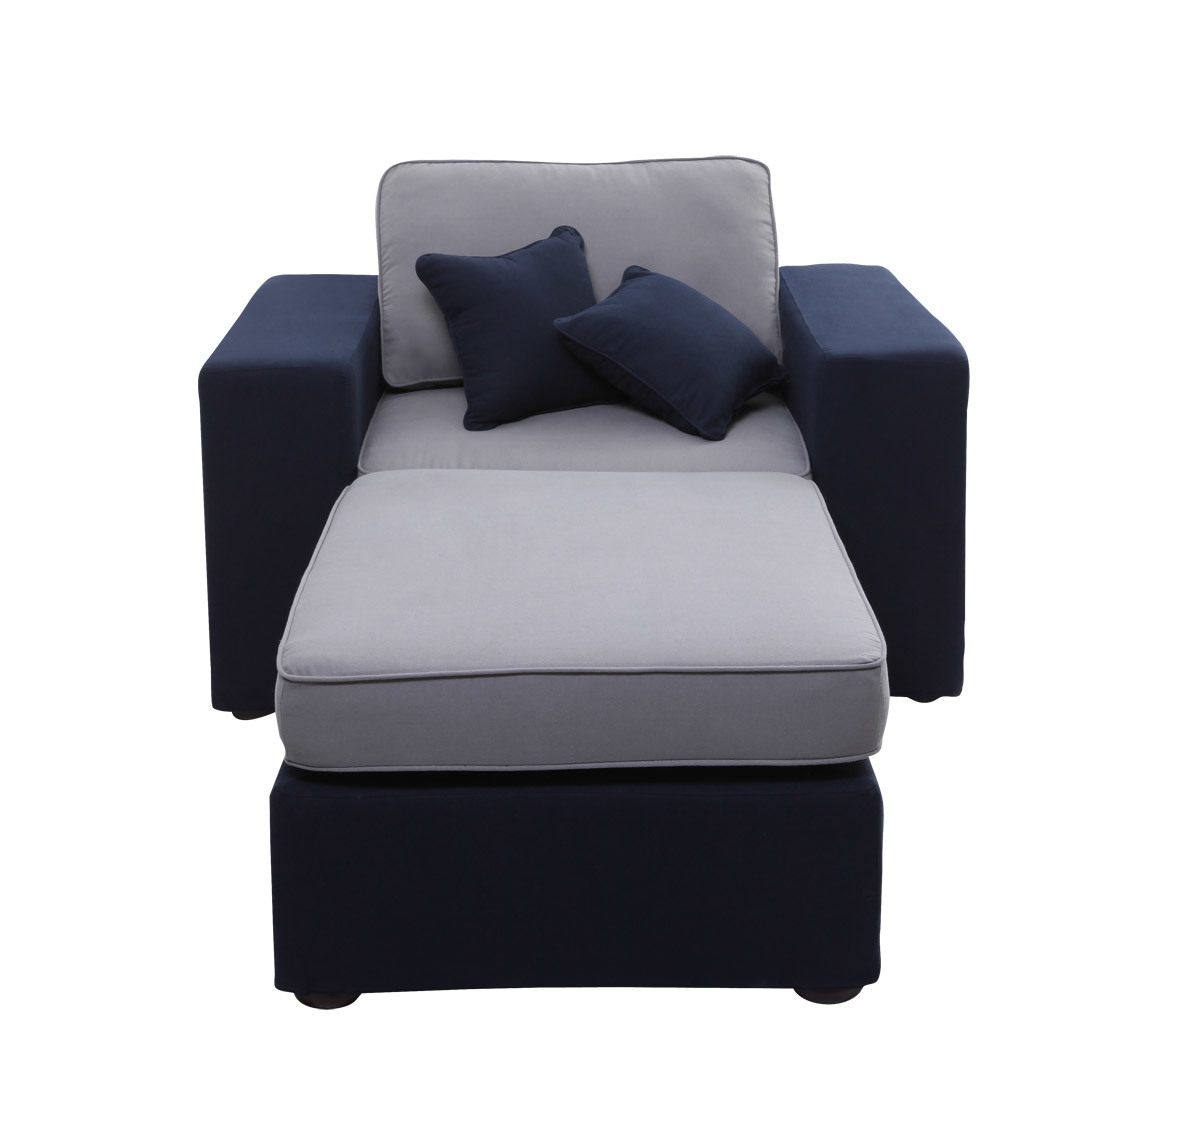 fauteuil m ridienne modulable bleu marine et gris up to you miliboo. Black Bedroom Furniture Sets. Home Design Ideas